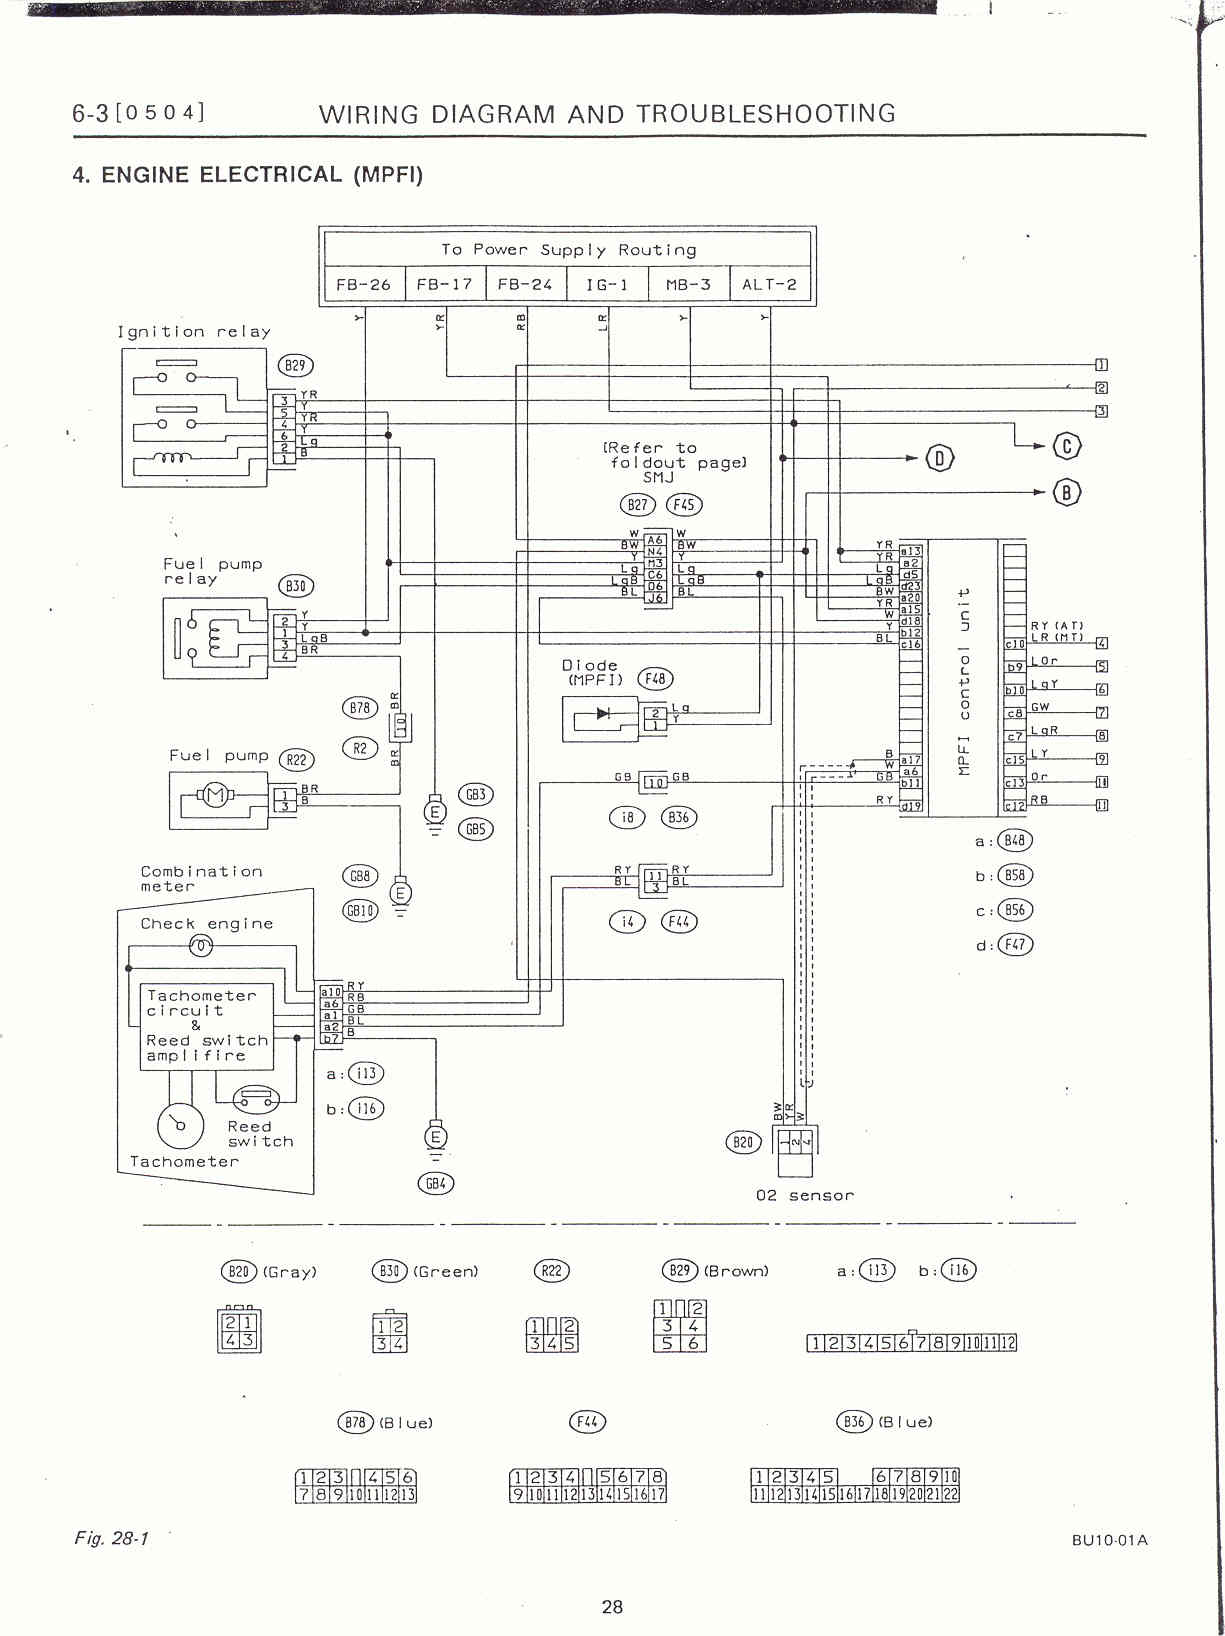 wiring harness connector with Showthread on F21 Kabelbaum Elektrik Schlosssatz P 257275 1 also Repairing tsz H ignition system moreover D 10 furthermore Auxinput moreover Abs Trailer Plug Color Wiring Diagrams.